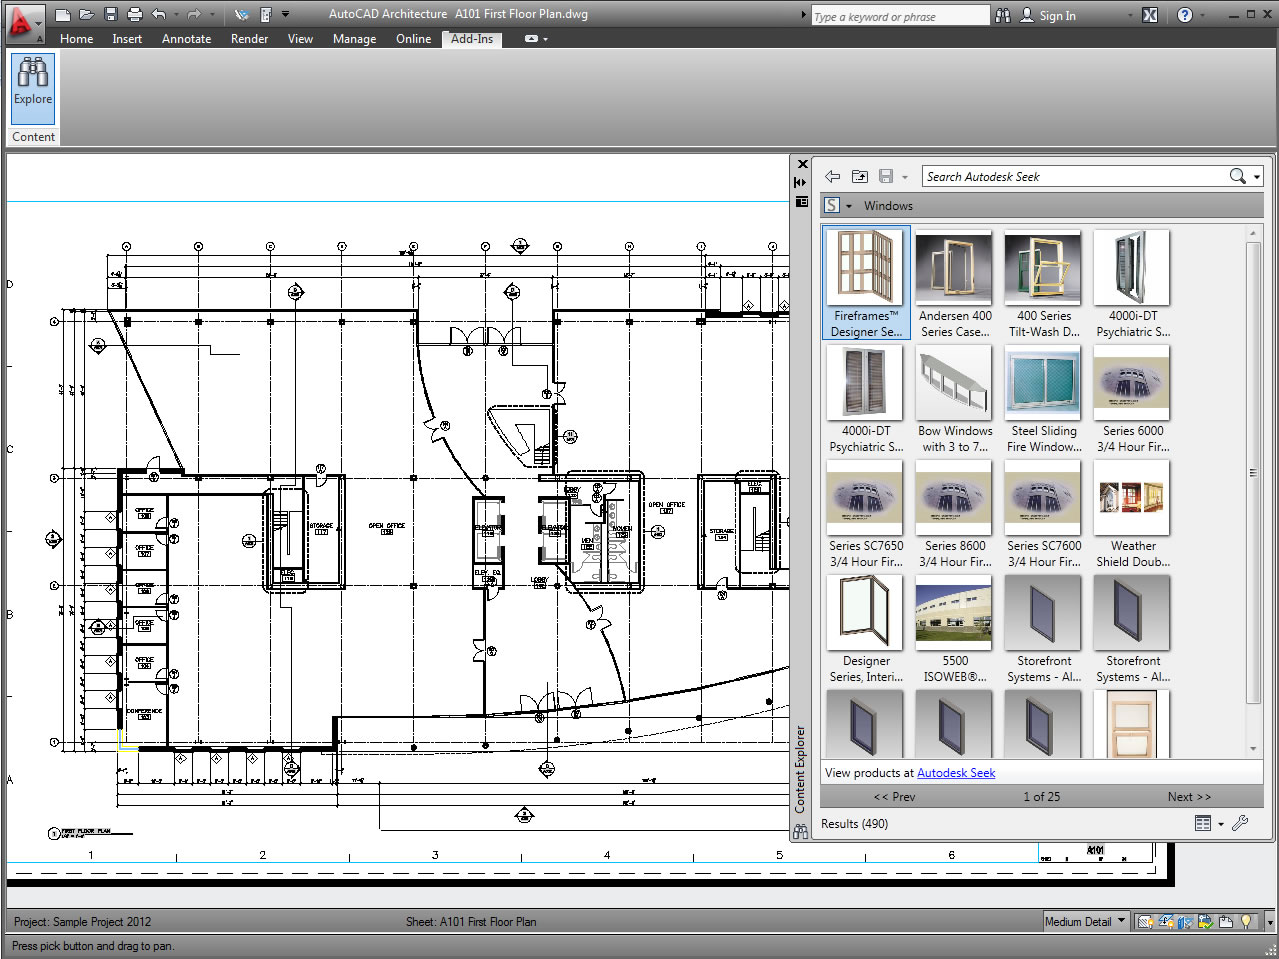 Software you want autodesk autocad architecture v2012 Architect software